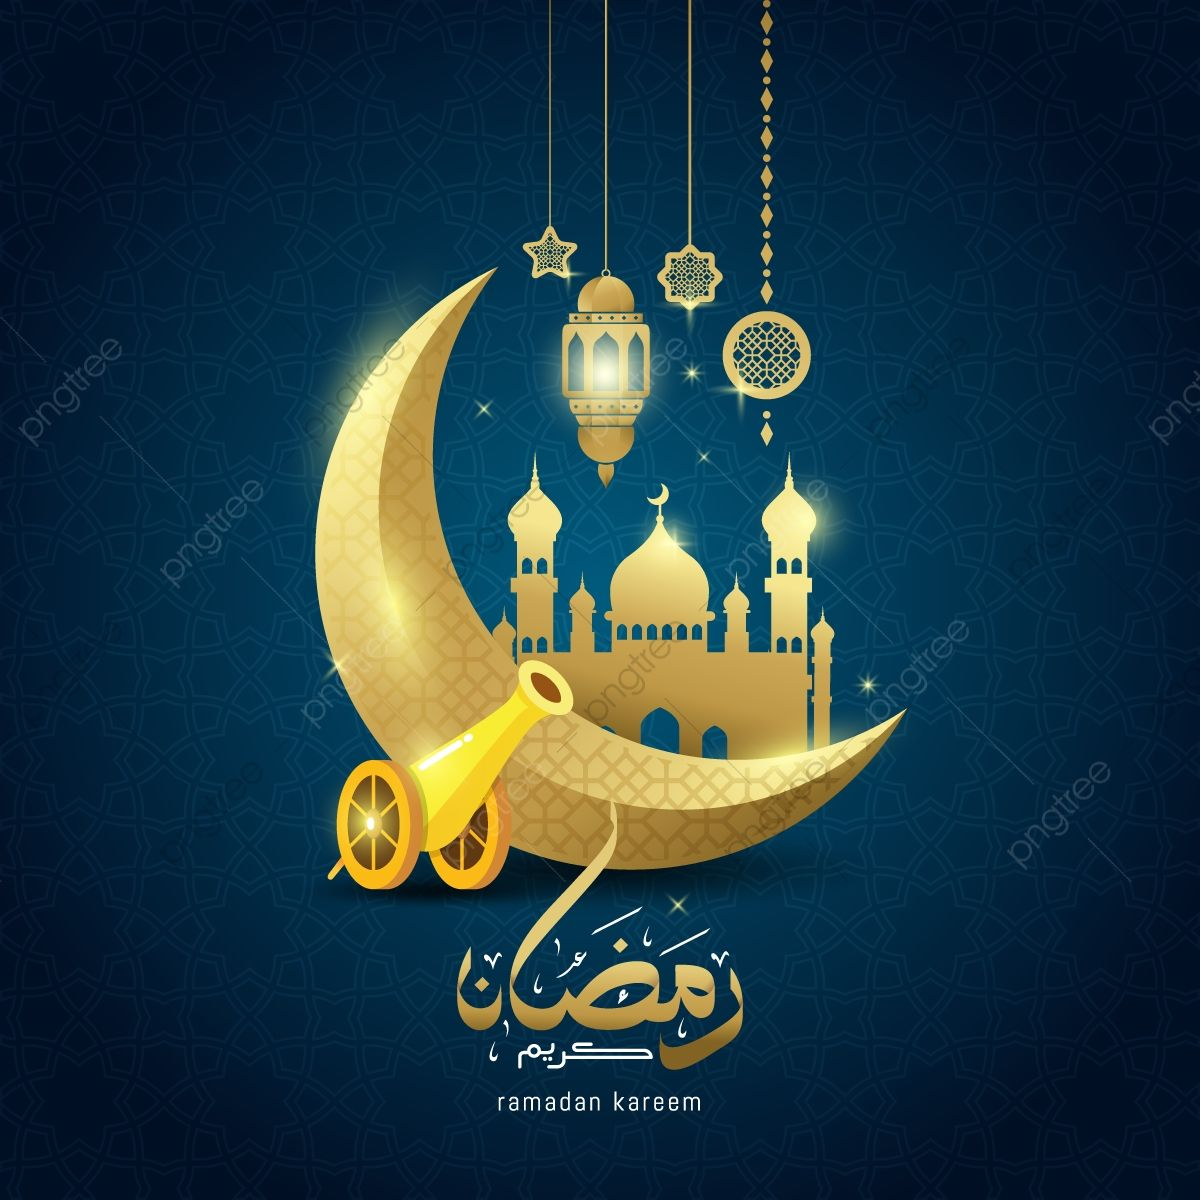 Ramadan Kareem Arabic Calligraphy Greeting Card Ramadan Kareem Islam Png And Vector With Transparent Background For Free Download Ramadan Kareem Ramadan Ramadan Cards